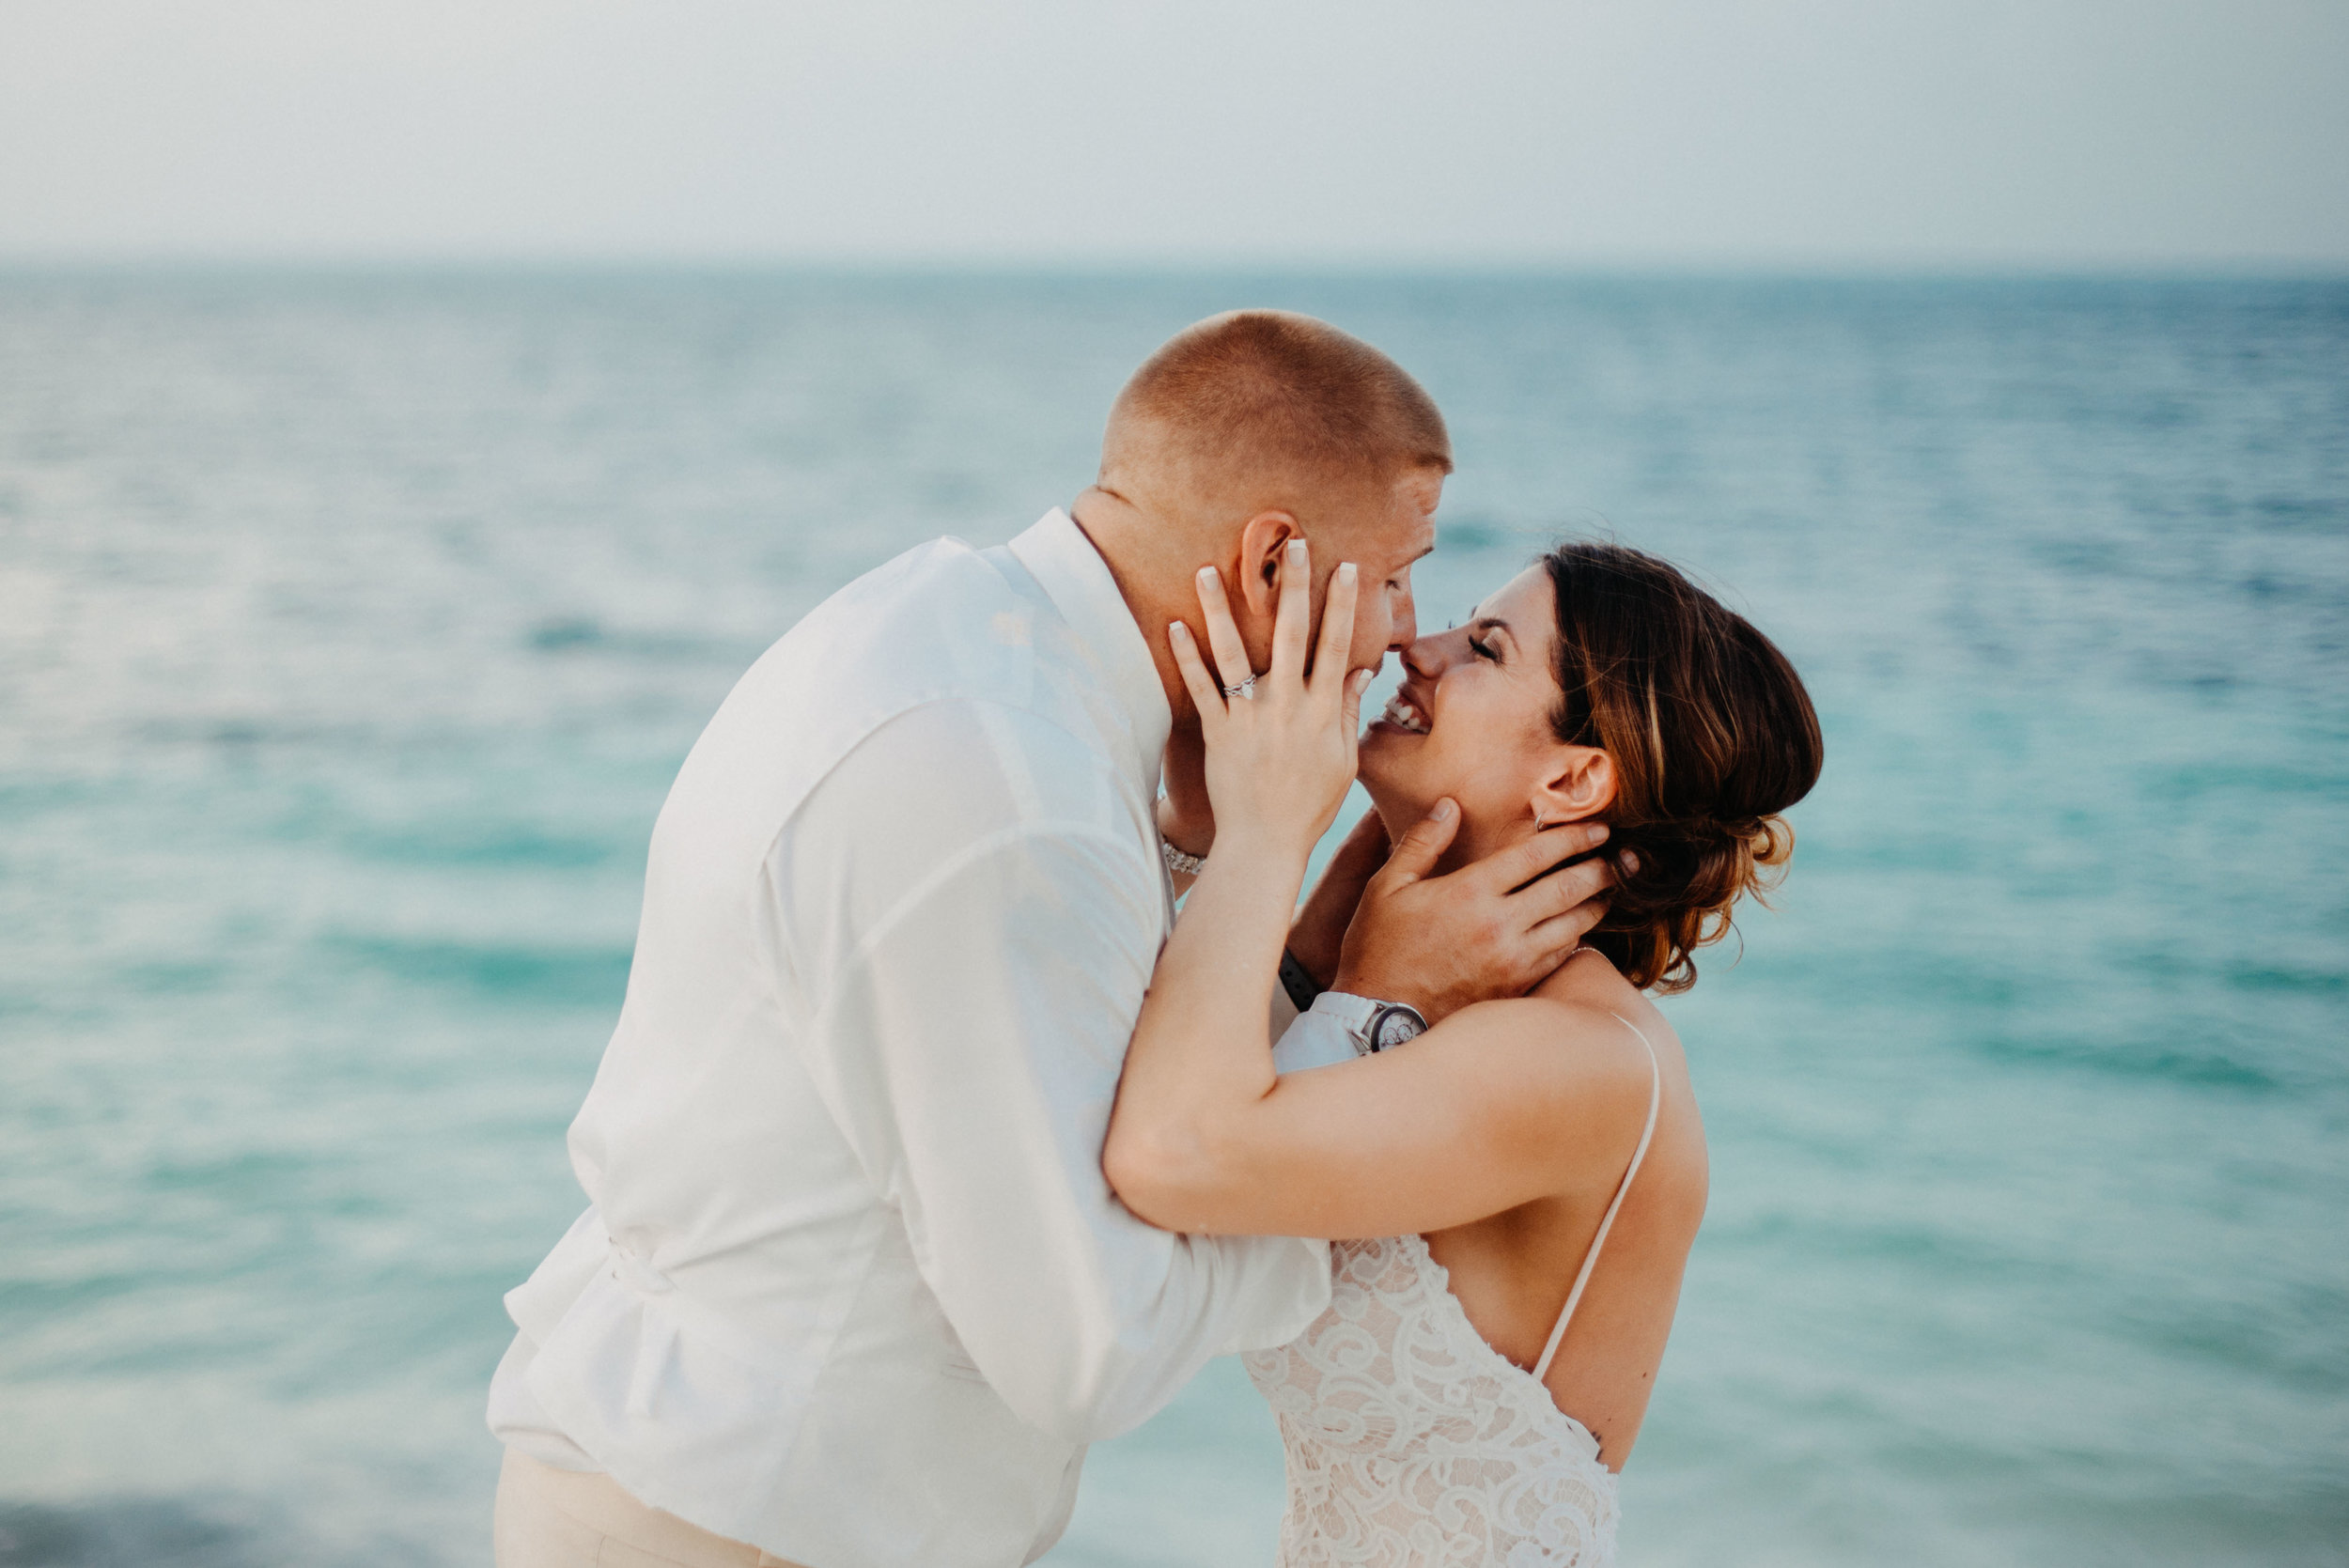 Beach-Wedding-Photography-Cancun-Elopement-Destination-Elopement-Photography-Destination-Beach-Wedding-+Costa-Rica-Wedding-Photography-Beach-Wedding-Photos-teresawoodhull-Cancun-Elopement-Beach-Wedding-+Sunset-Beach-Wedding-Fotografia-de-bodas-Nicoya-Peninsula-Elopement-Photographer-Santa-Teresa-Elopement-Photographer-Adventure-elopement-photographer-Santa-Teresa-Wedding-Photographer-Adventure-Wedding-Boda-playa-santa-teresa-Adventure-Wedding-Photography-Adventure-Wedding-Photographer-Beach-Elopement-Beach-Elopement-Photos-maddie-mae-Beach-Elopement-Photographer-Destination-Elopement-Photographer-Sunset-Beach-Elopement-Mexico-wedding-photographer-cabo-wedding-photographer-mexico-wedding-mexico-destination-wedding-cancun-destination-wedding-cancun-elopement-photographer-playa-del-carmen-wedding-playa-del-carmen-destination-wedding-photographer-playa-del-carmen-wedding-photography-Nicoya-Peninsula-Wedding-Photography-Nicoya-Peninsula-Wedding-Photographer-Nicoya-Peninsula-Elopement-Photography-cancun-all-inclusive-wedding-julia-tony-016